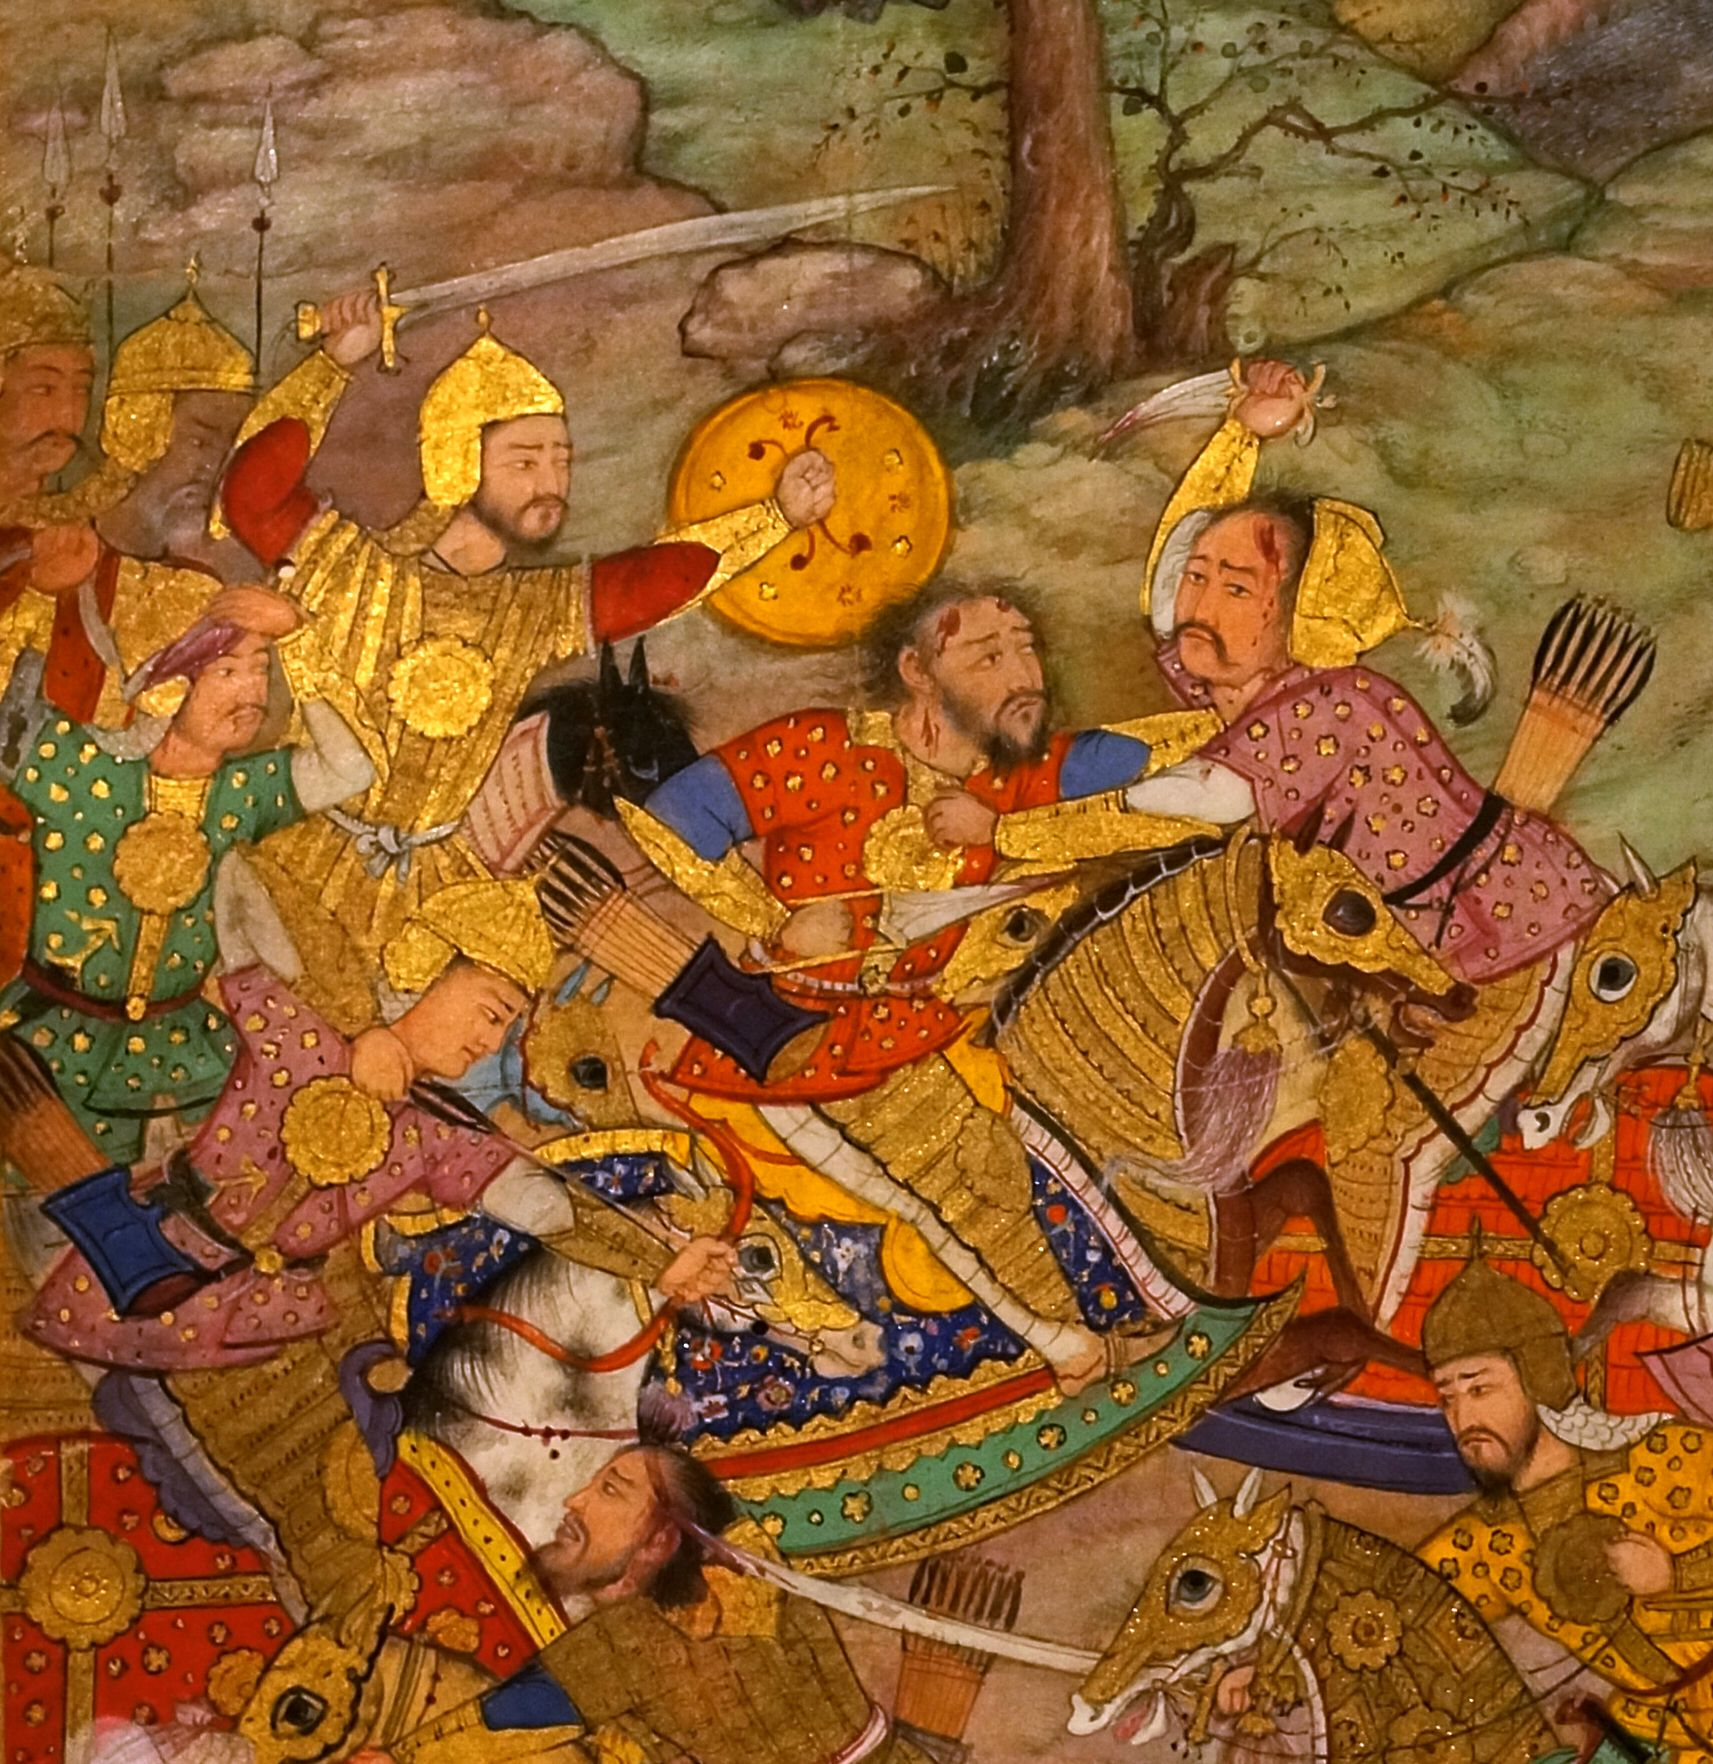 Detail from The battle of Kanua, 1527 A folio from the Baburnama ('Memoirs